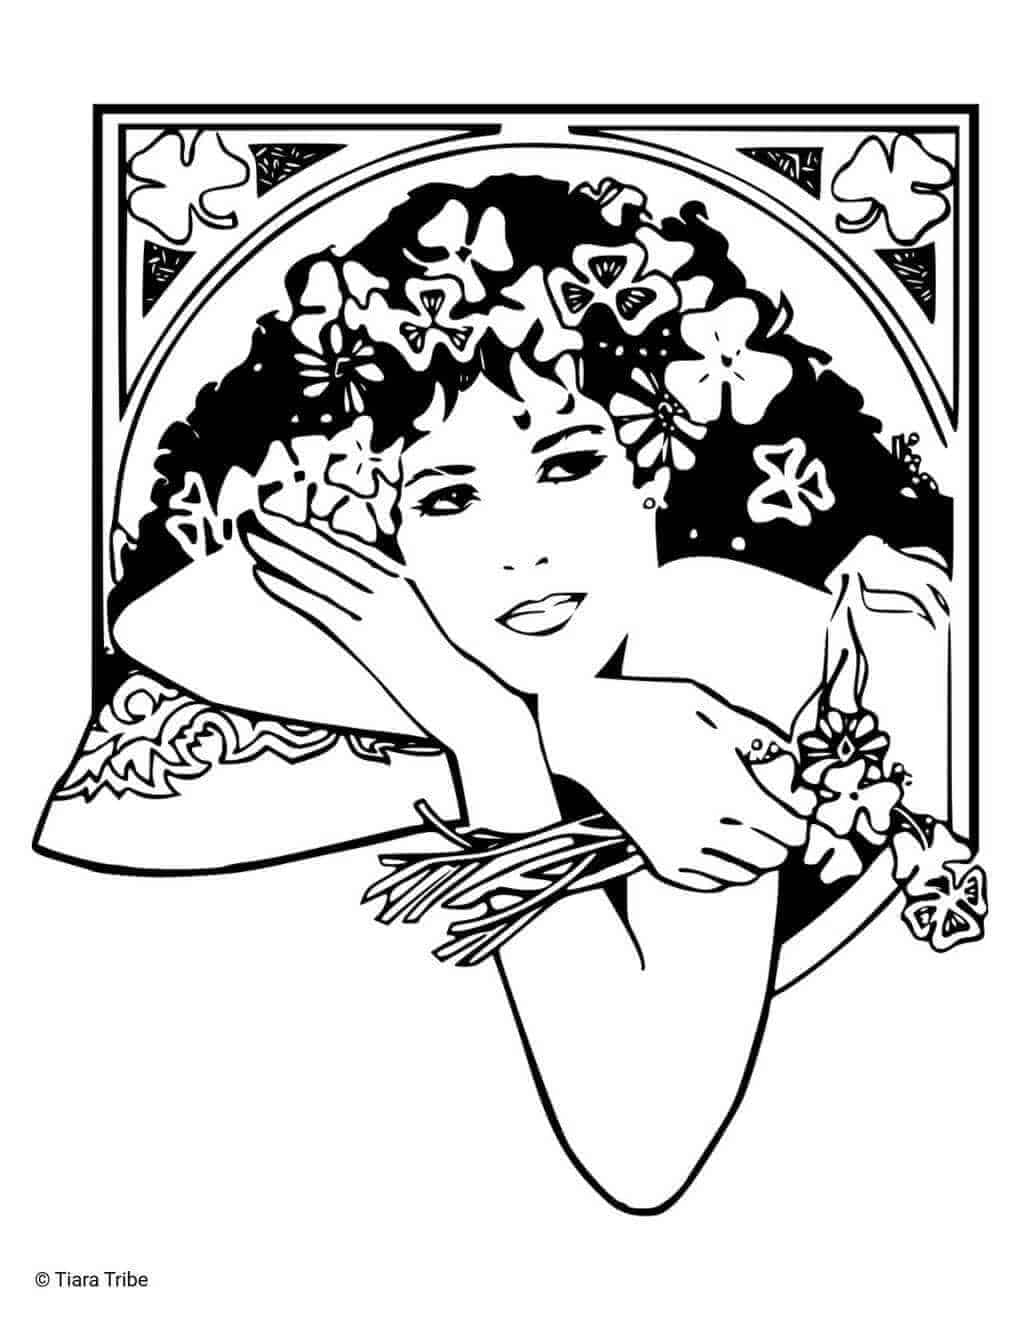 Irish Woman Coloring Page